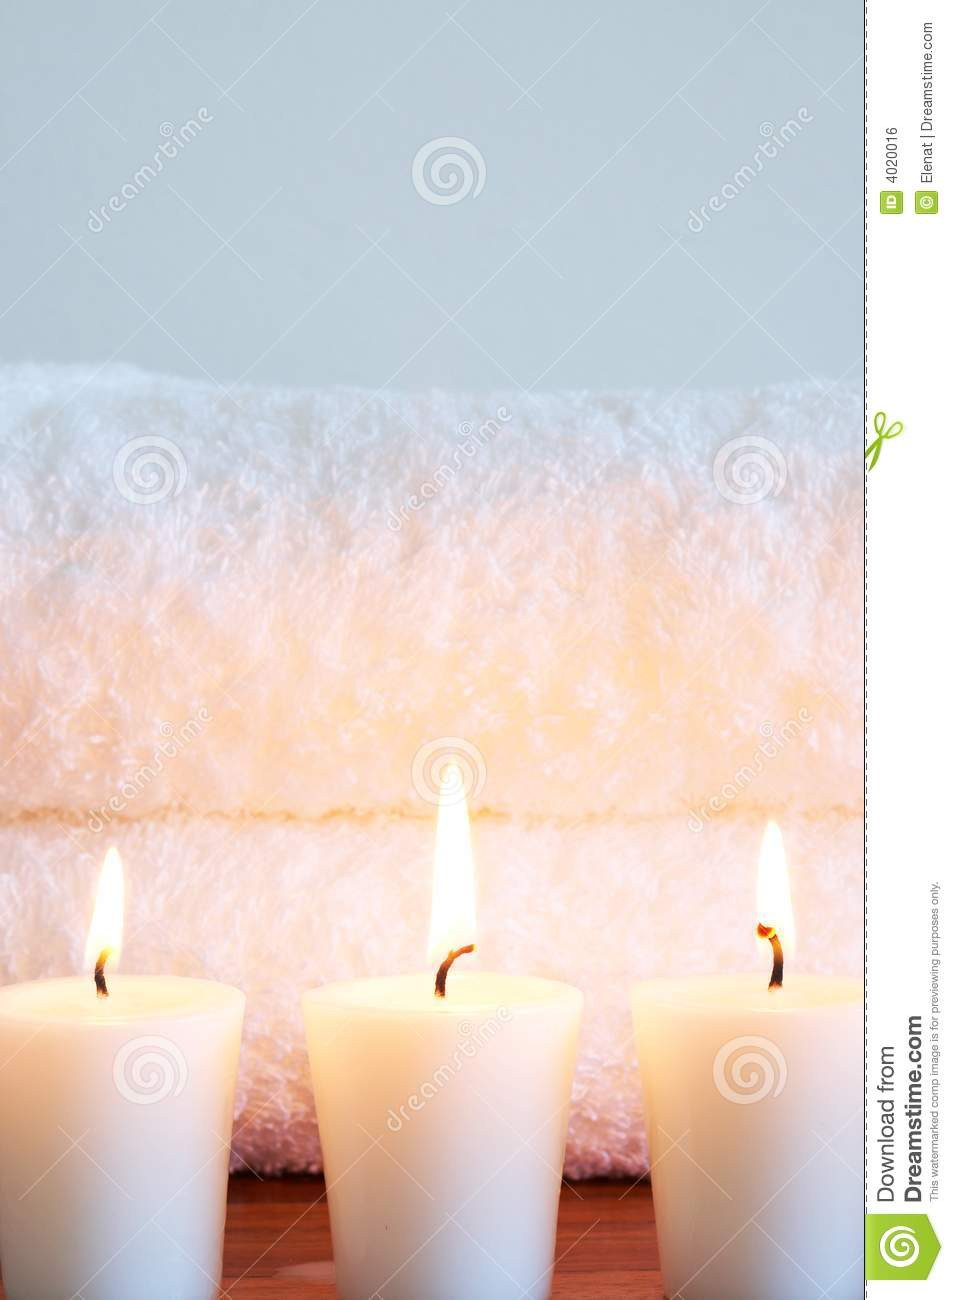 Relaxing spa scene with towels and candles